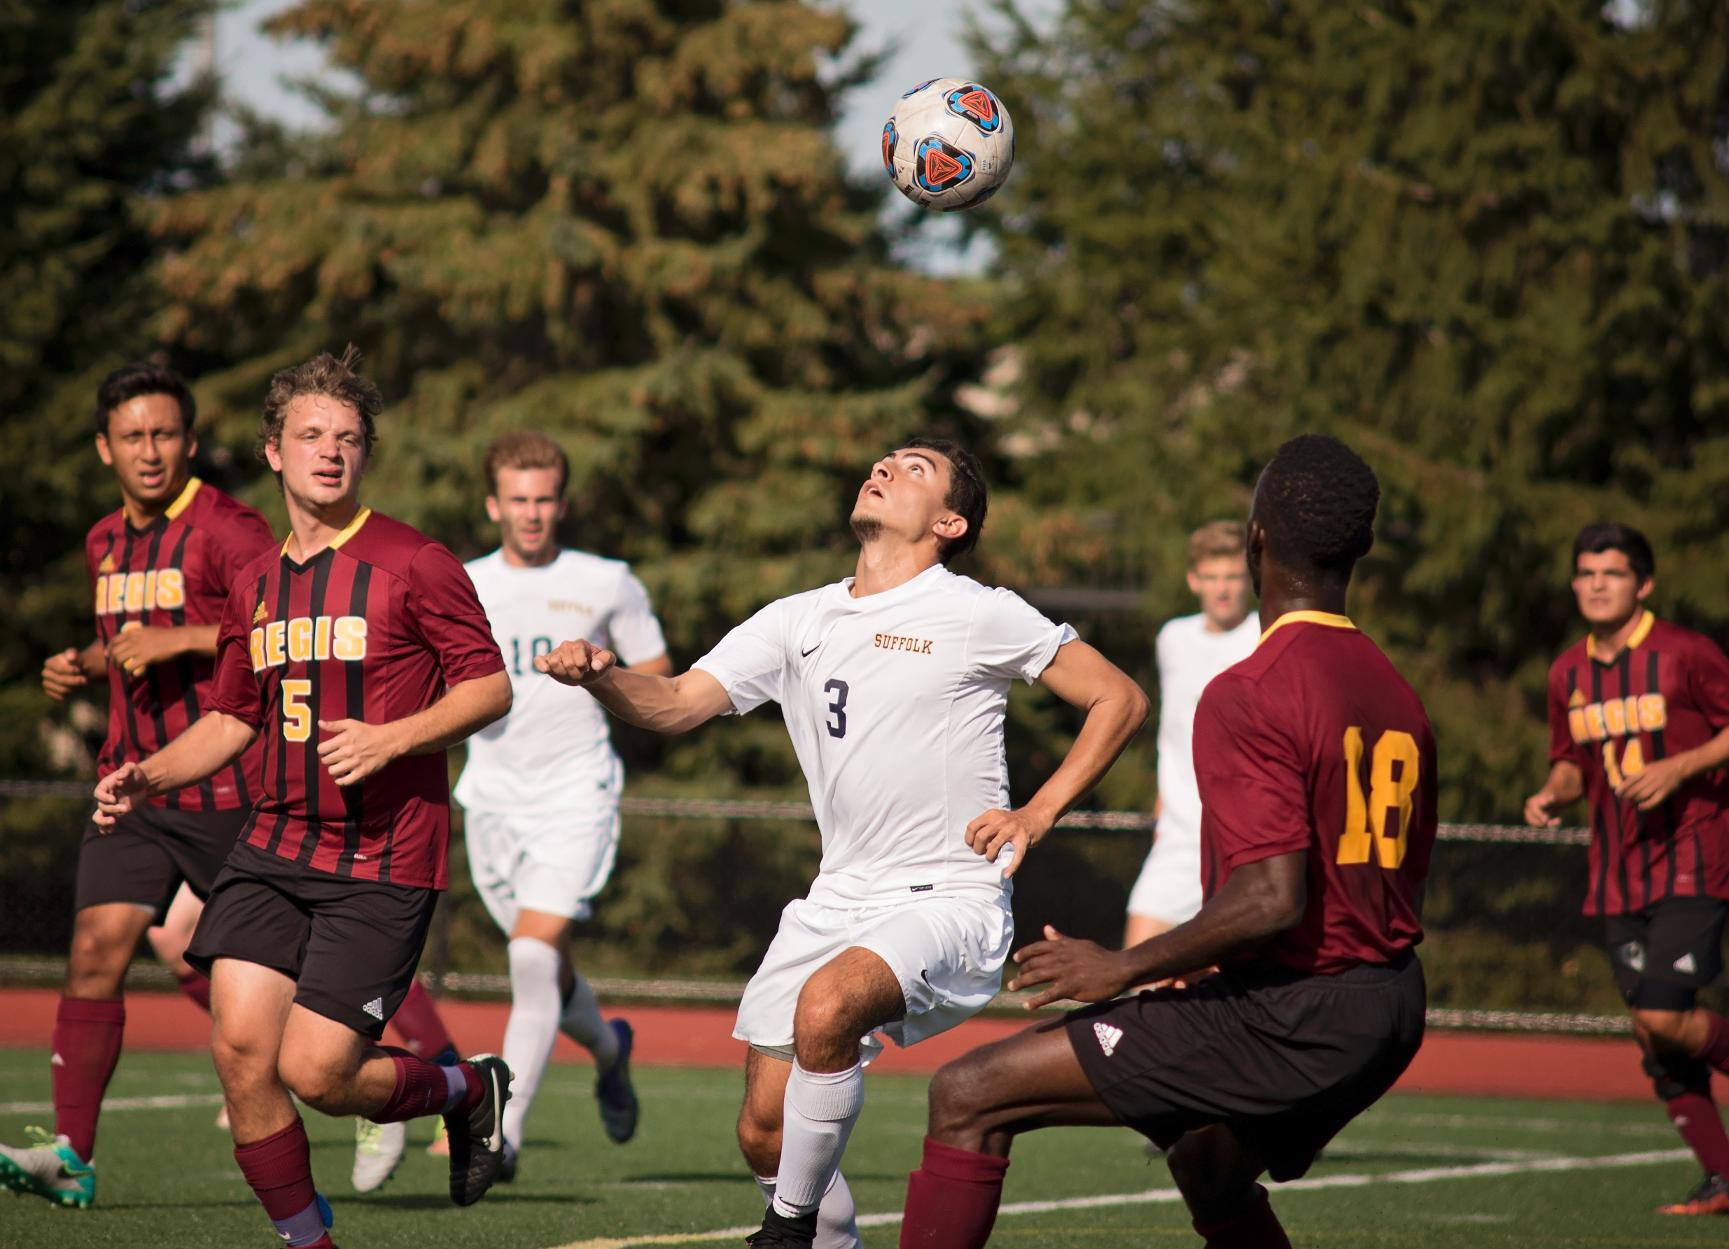 Men's Soccer's Heads to GNAC Leader Saint Joseph's Wednesday